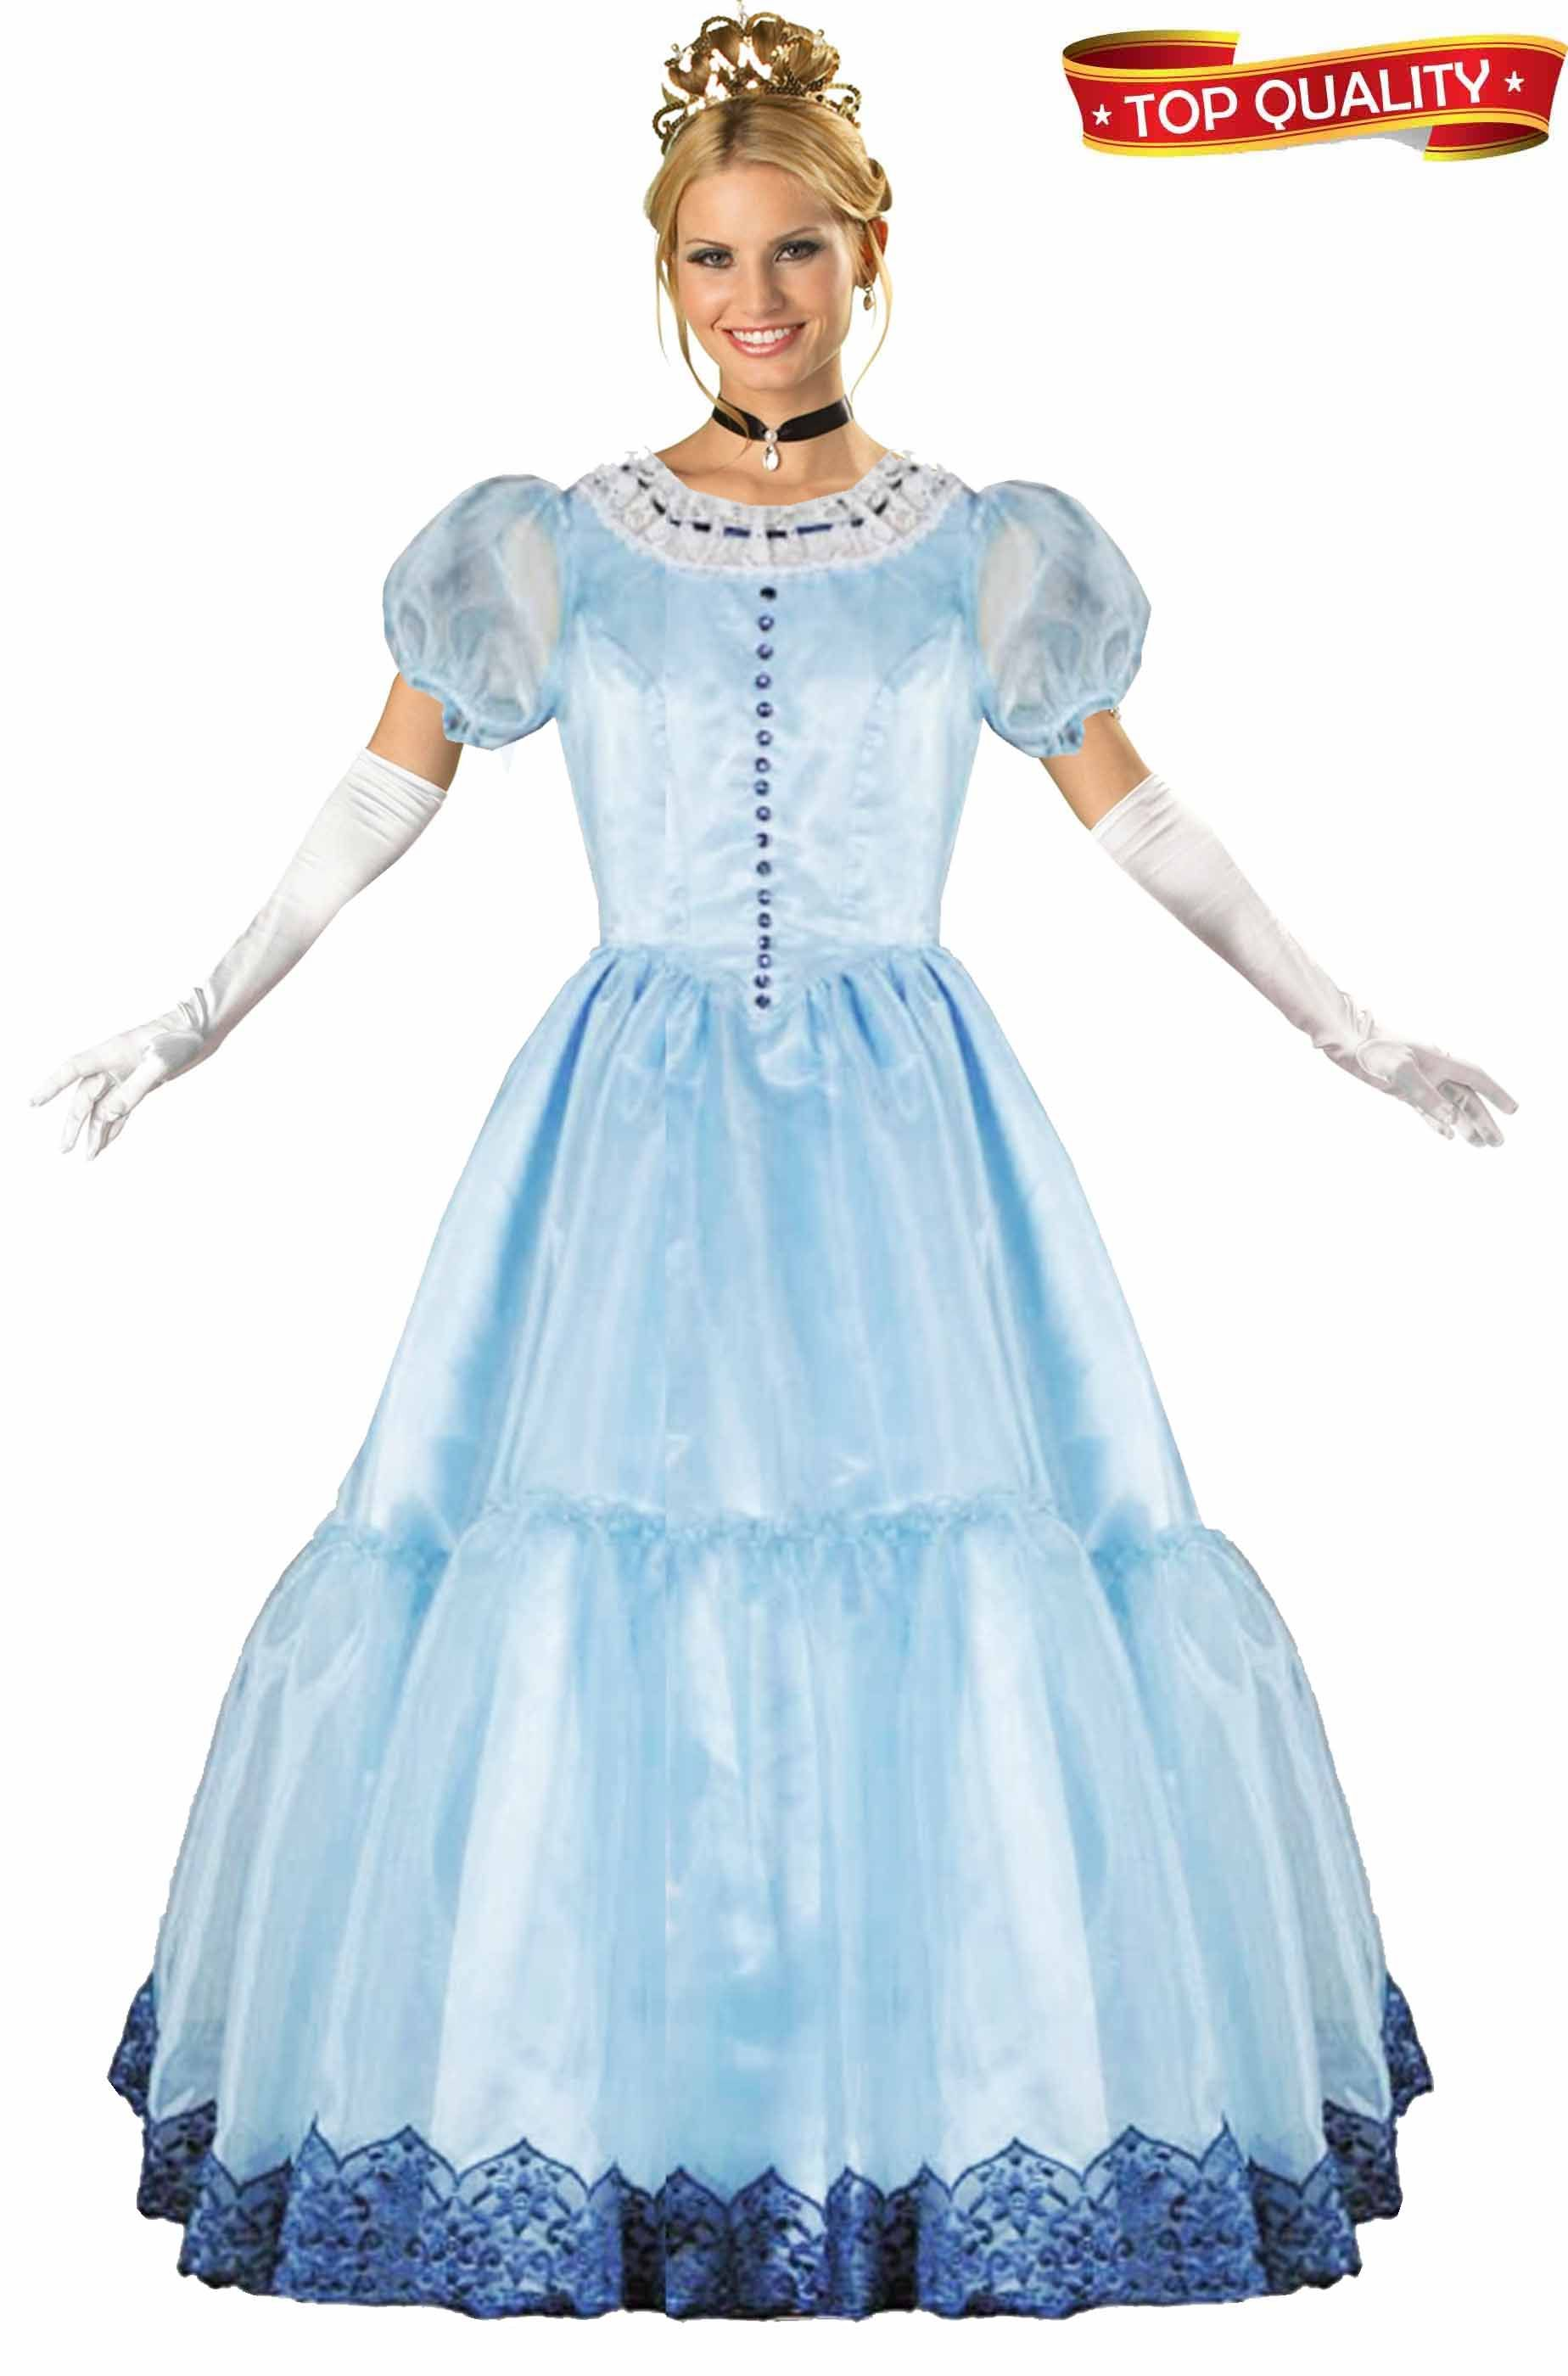 Da Donna Lunghi Bianchi Fantasma Principessa parrucca Halloween Fancy Dress accessorio